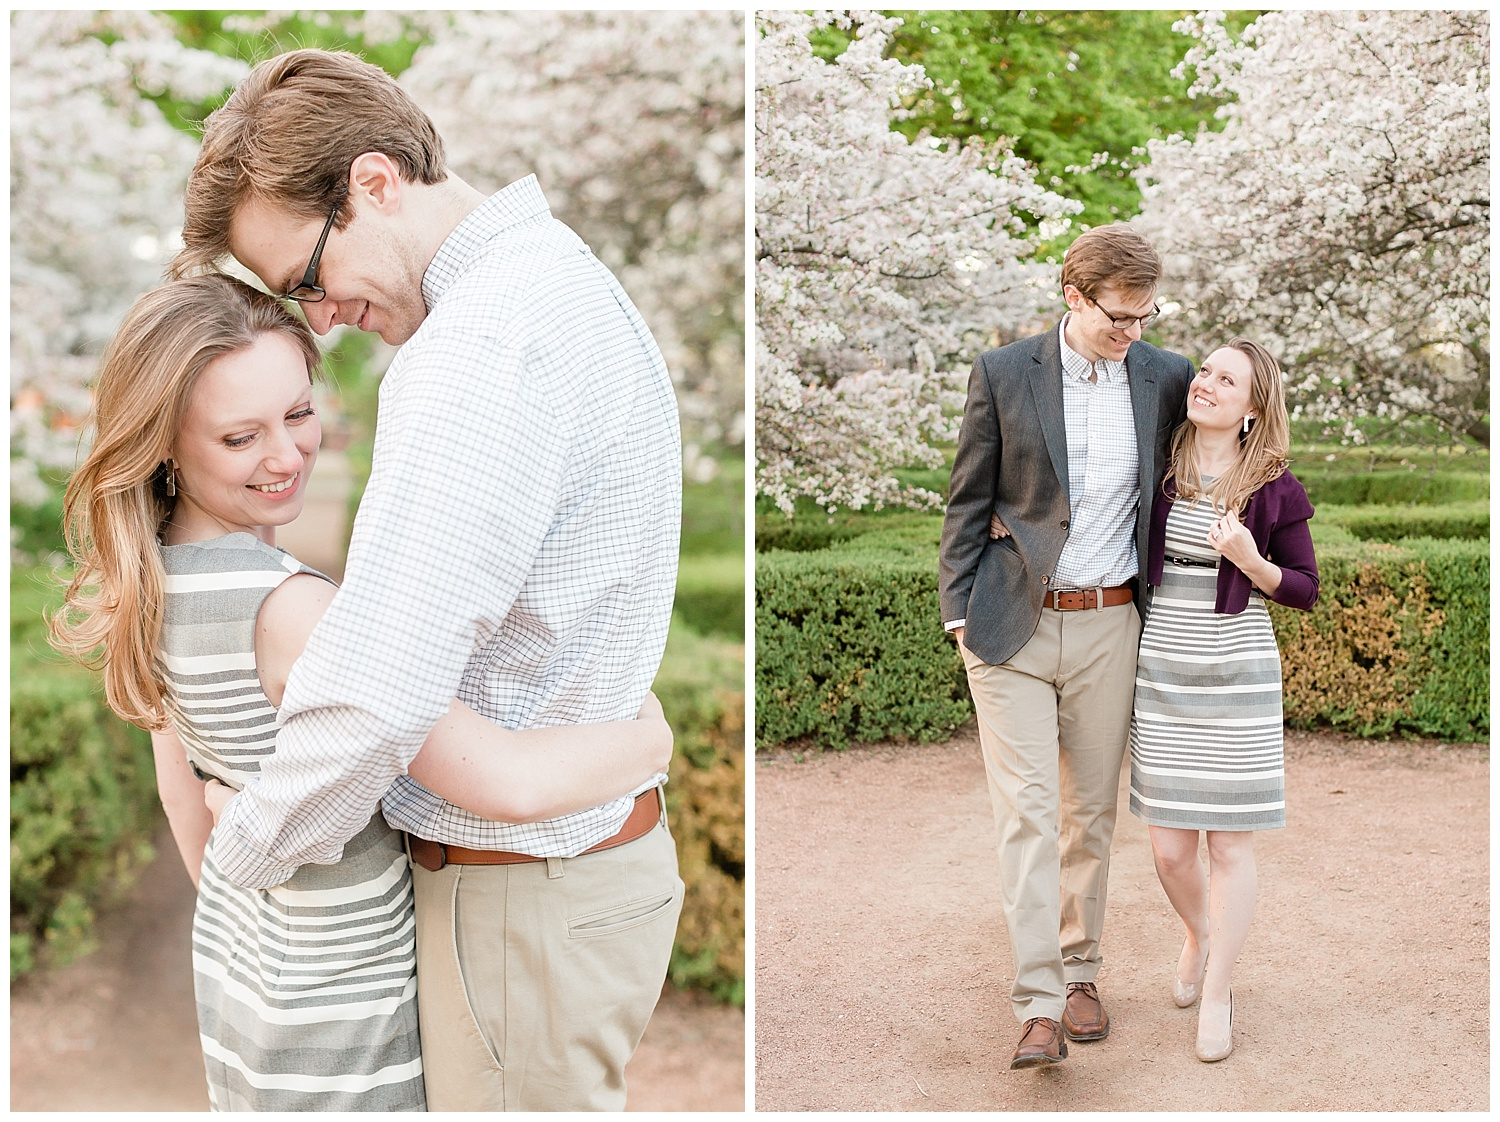 morton-arboretum-lisle-wedding-photographer-summer-engagement-session_0003.jpg